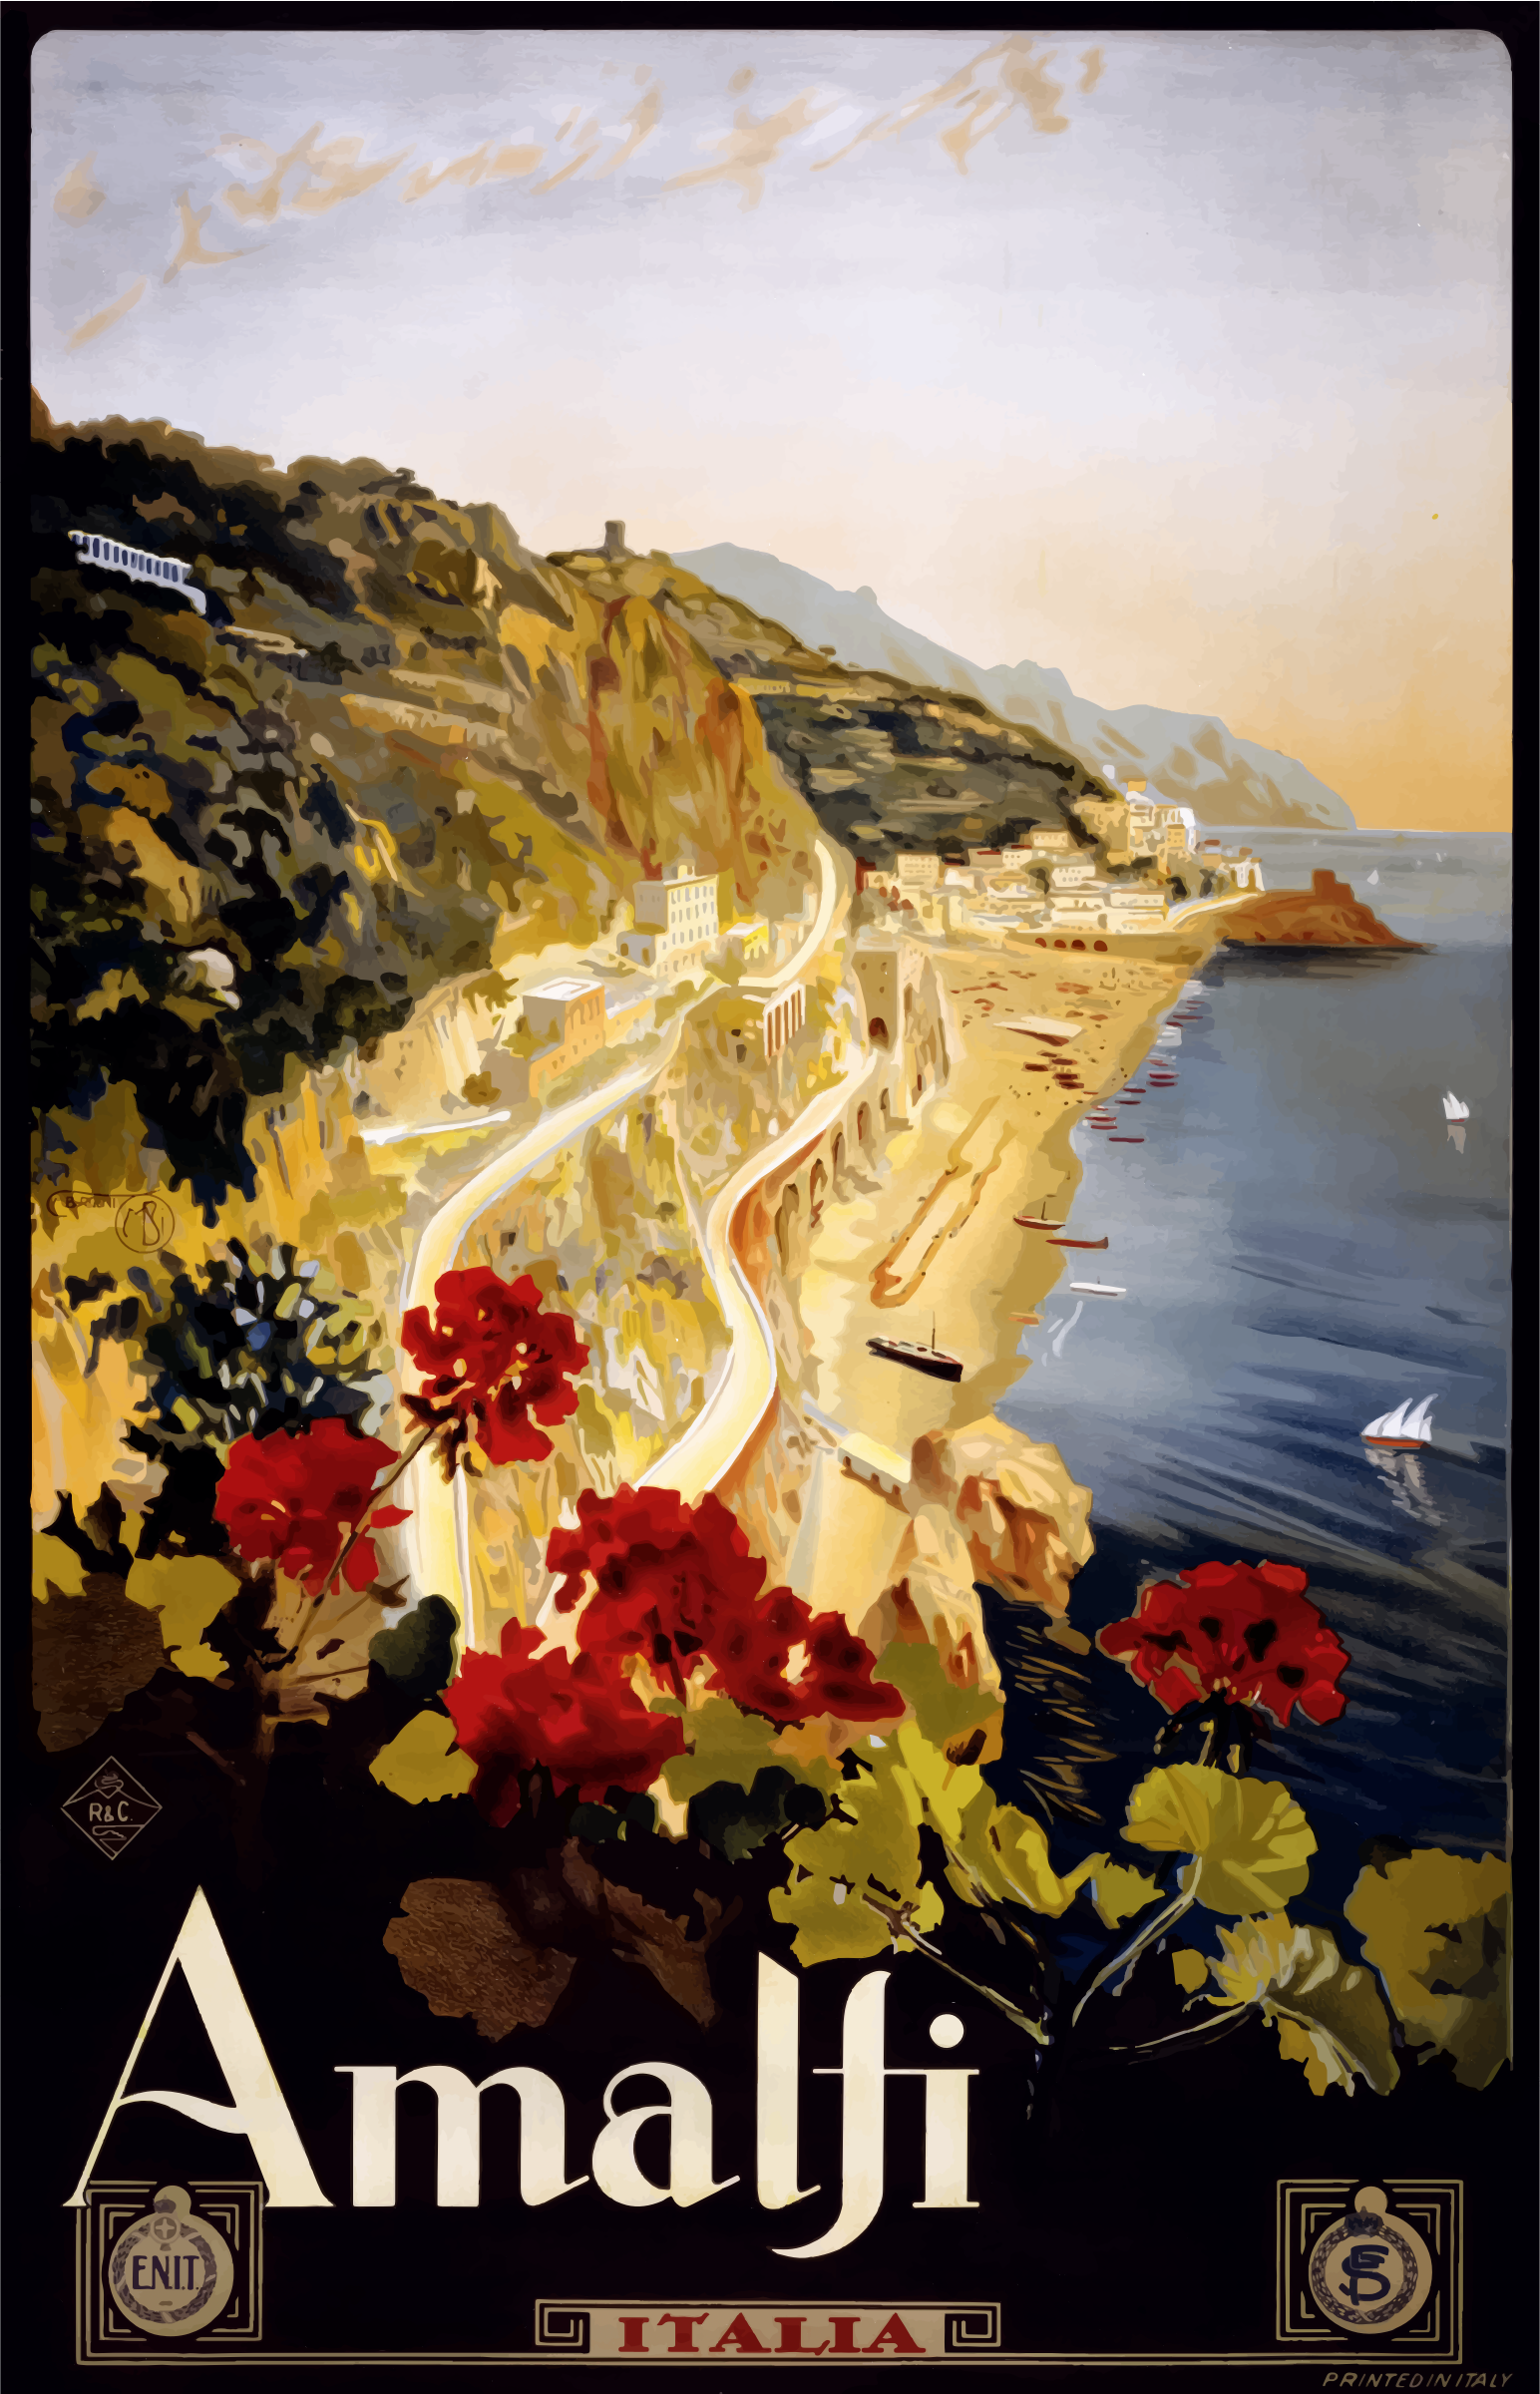 Vintage Travel Poster Amalfi Italy by GDJ